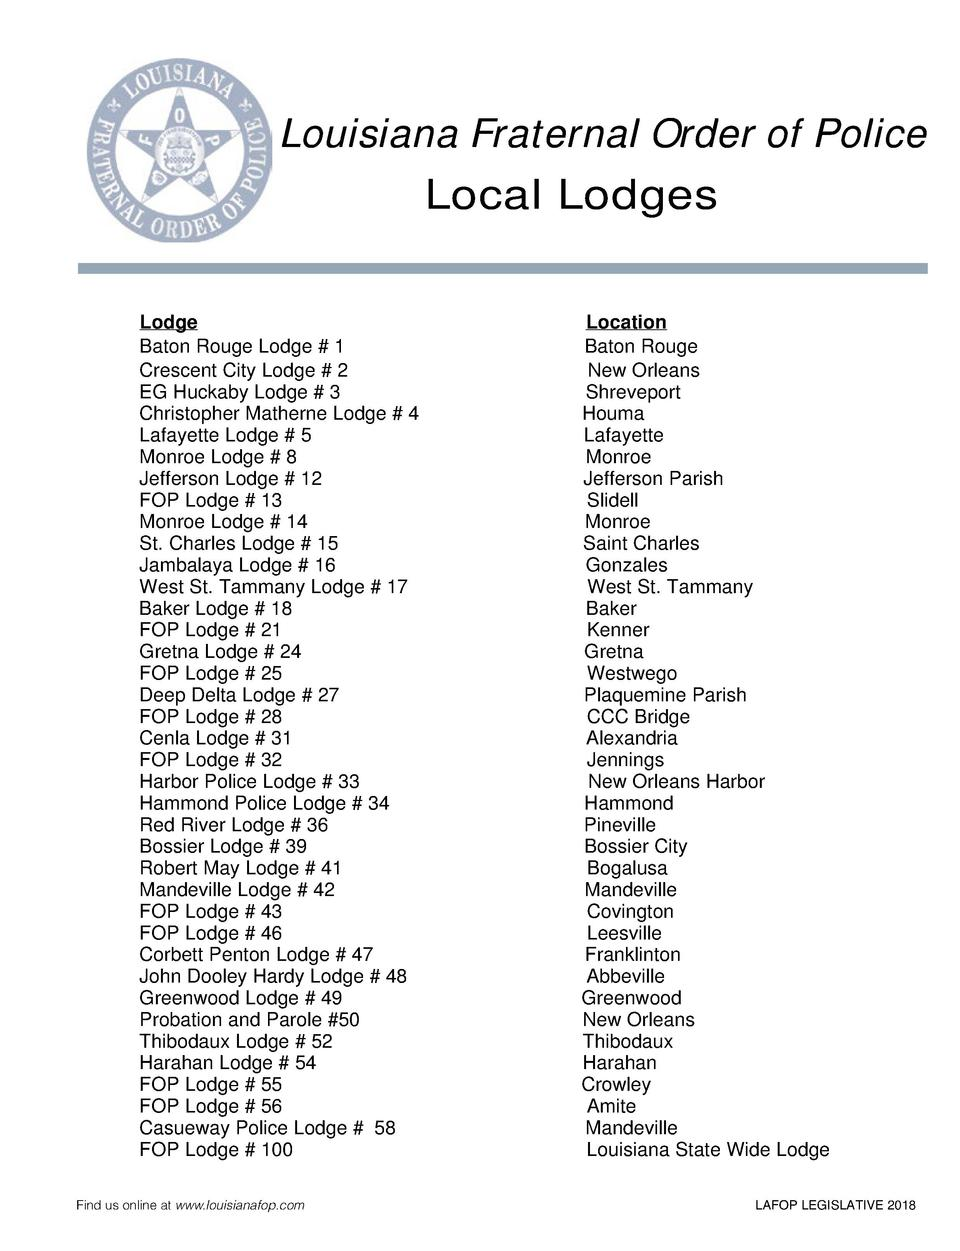 Louisiana Fraternal Order of Police Local Lodges Lodge Baton Rouge Lodge   1 Crescent City Lodge   2 EG Huckaby Lodge   3 ...